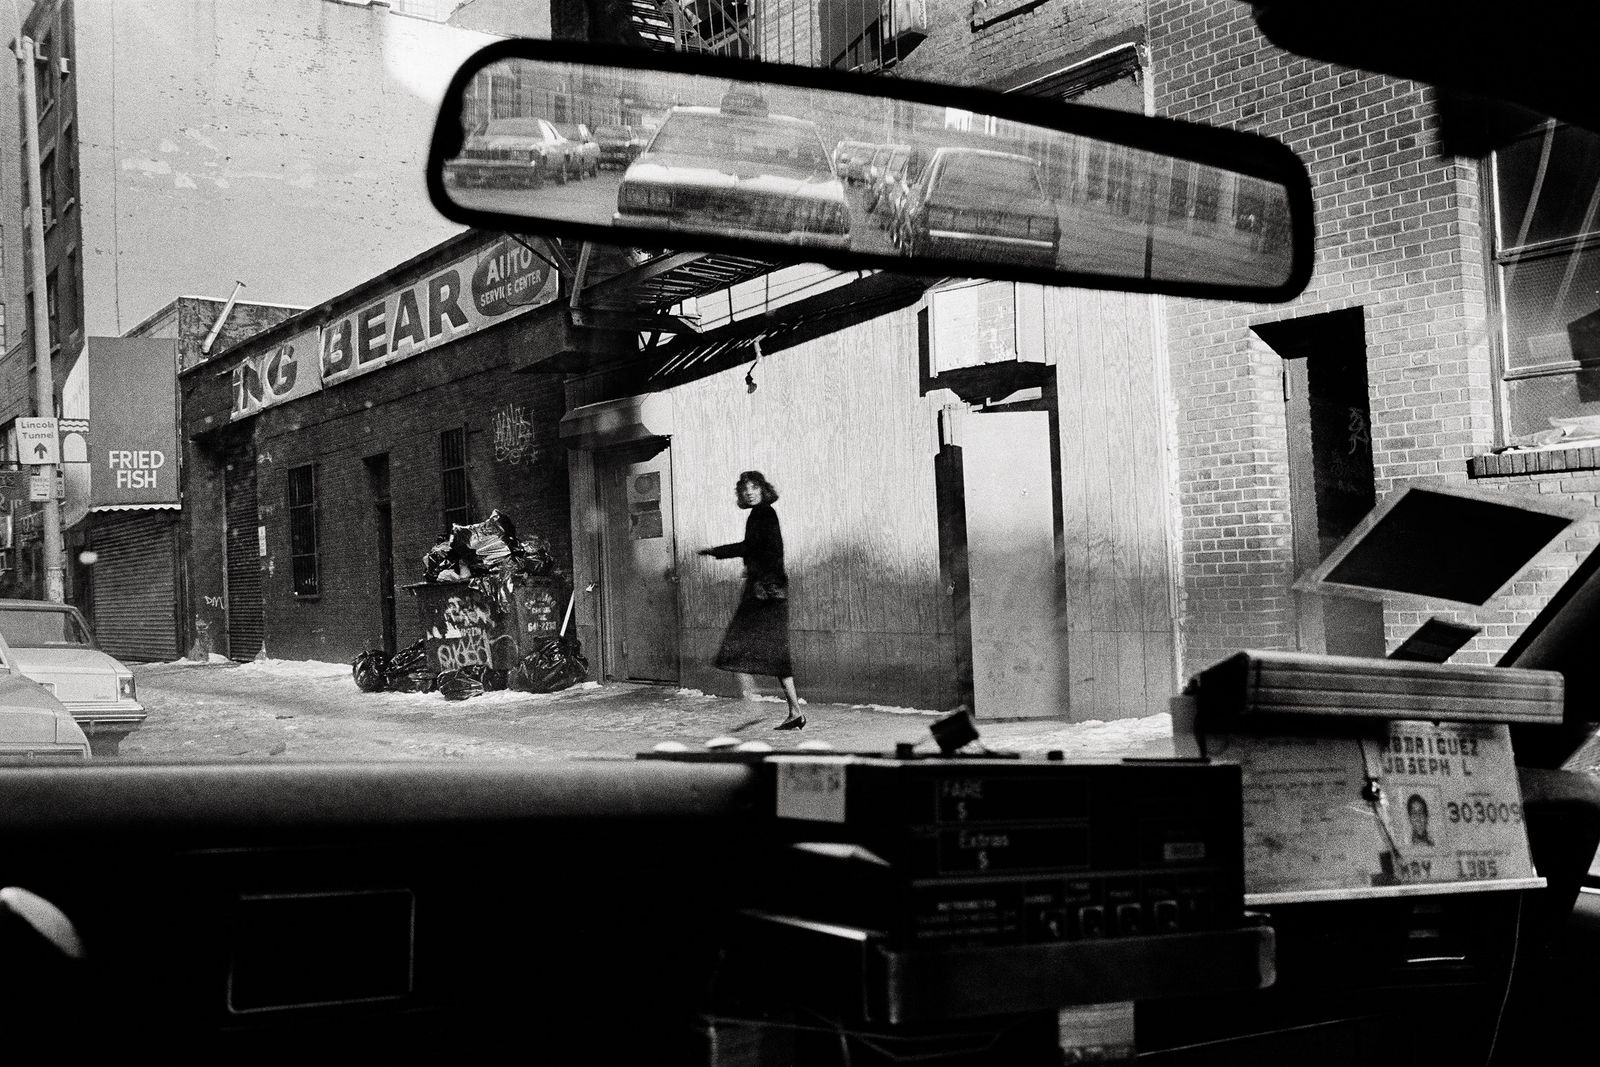 Old New York, Seen Through a Cab Driver's Windshield